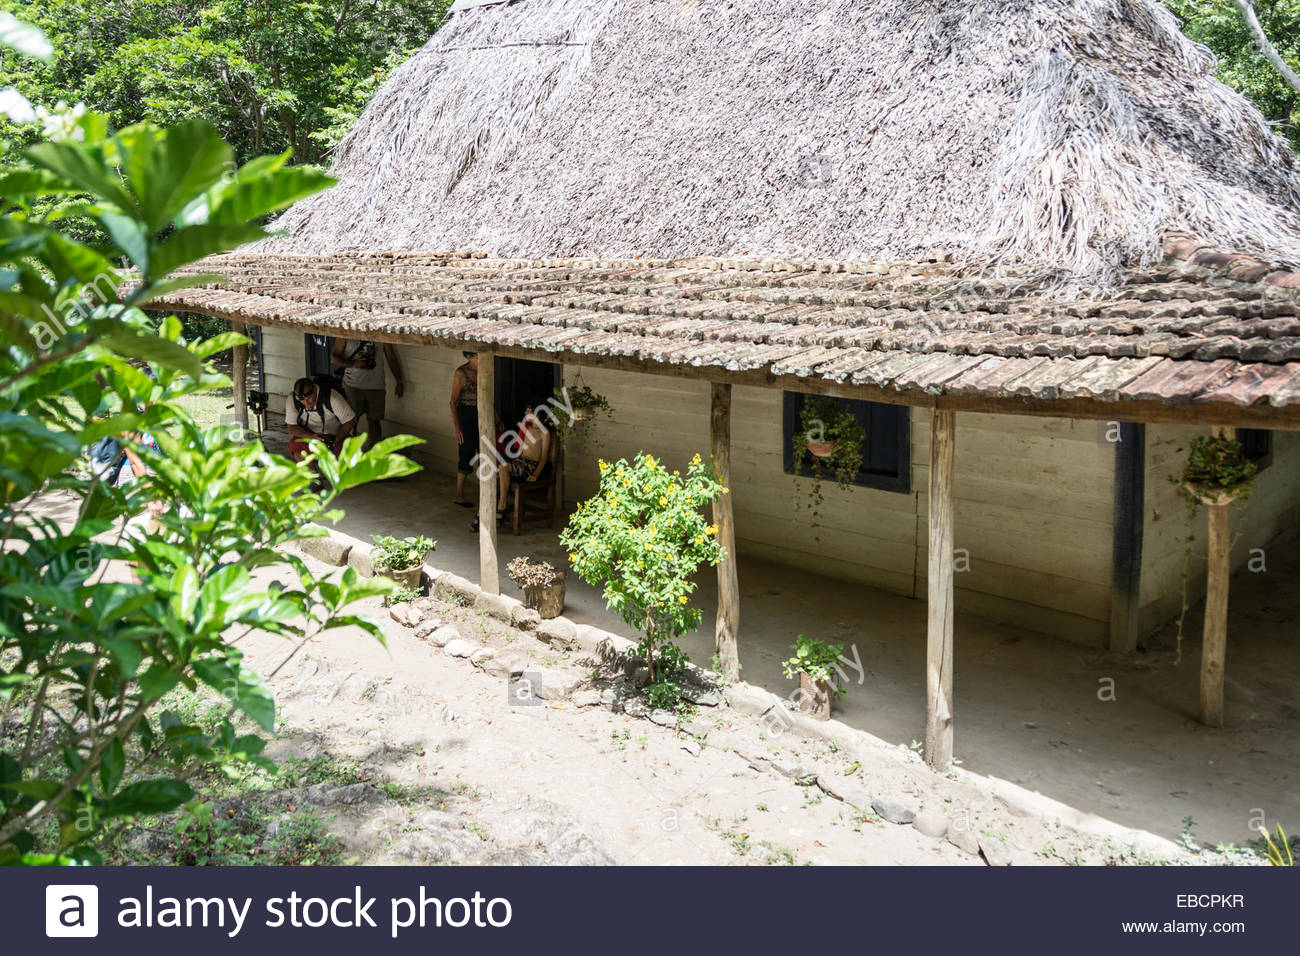 The traditional farmer's house in the Cuban countryside - Stock Image